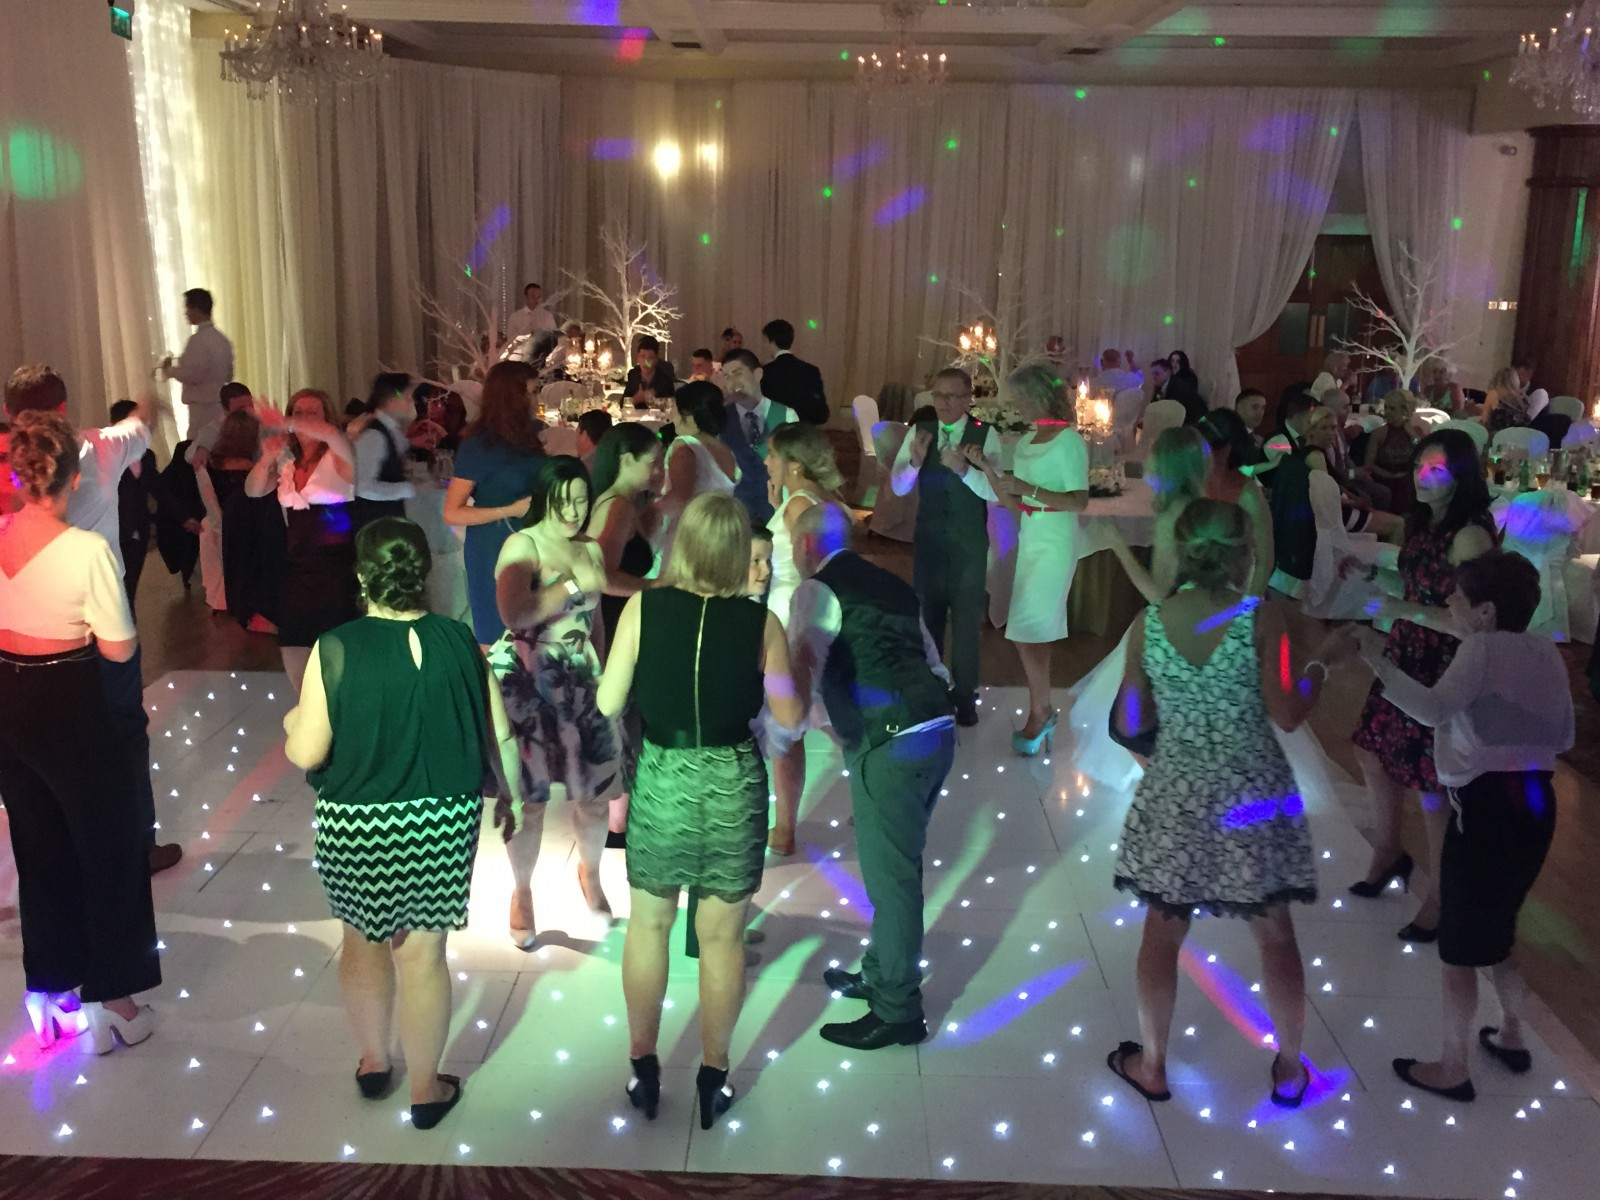 Gallery - dancing Culloden Hotel the wedding disco 2015-06-06 22.40.34